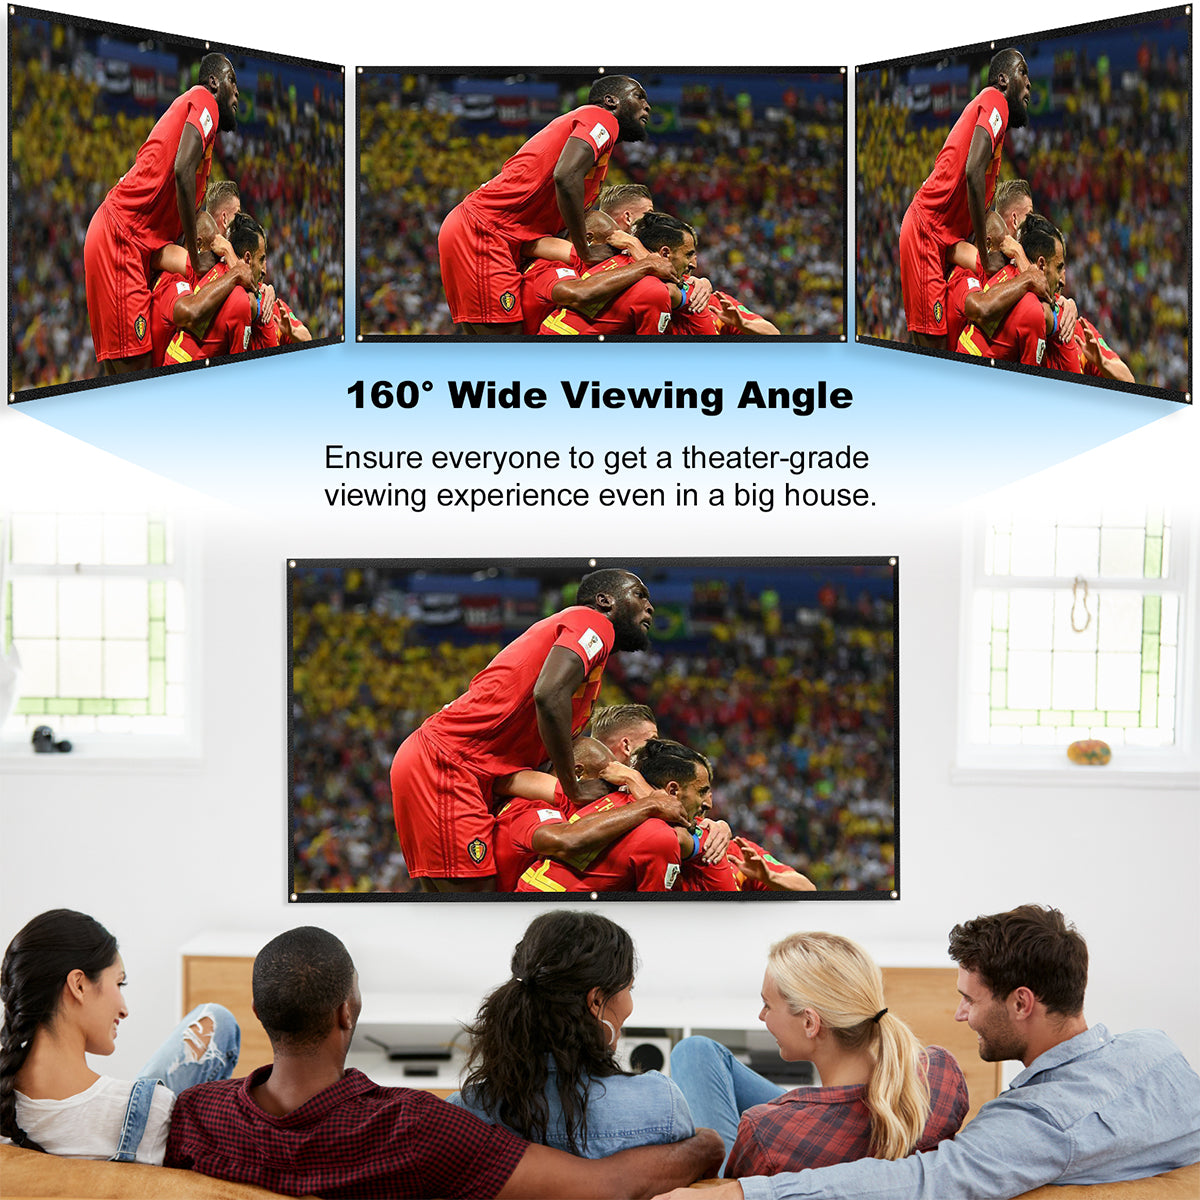 160° wide viewing angle